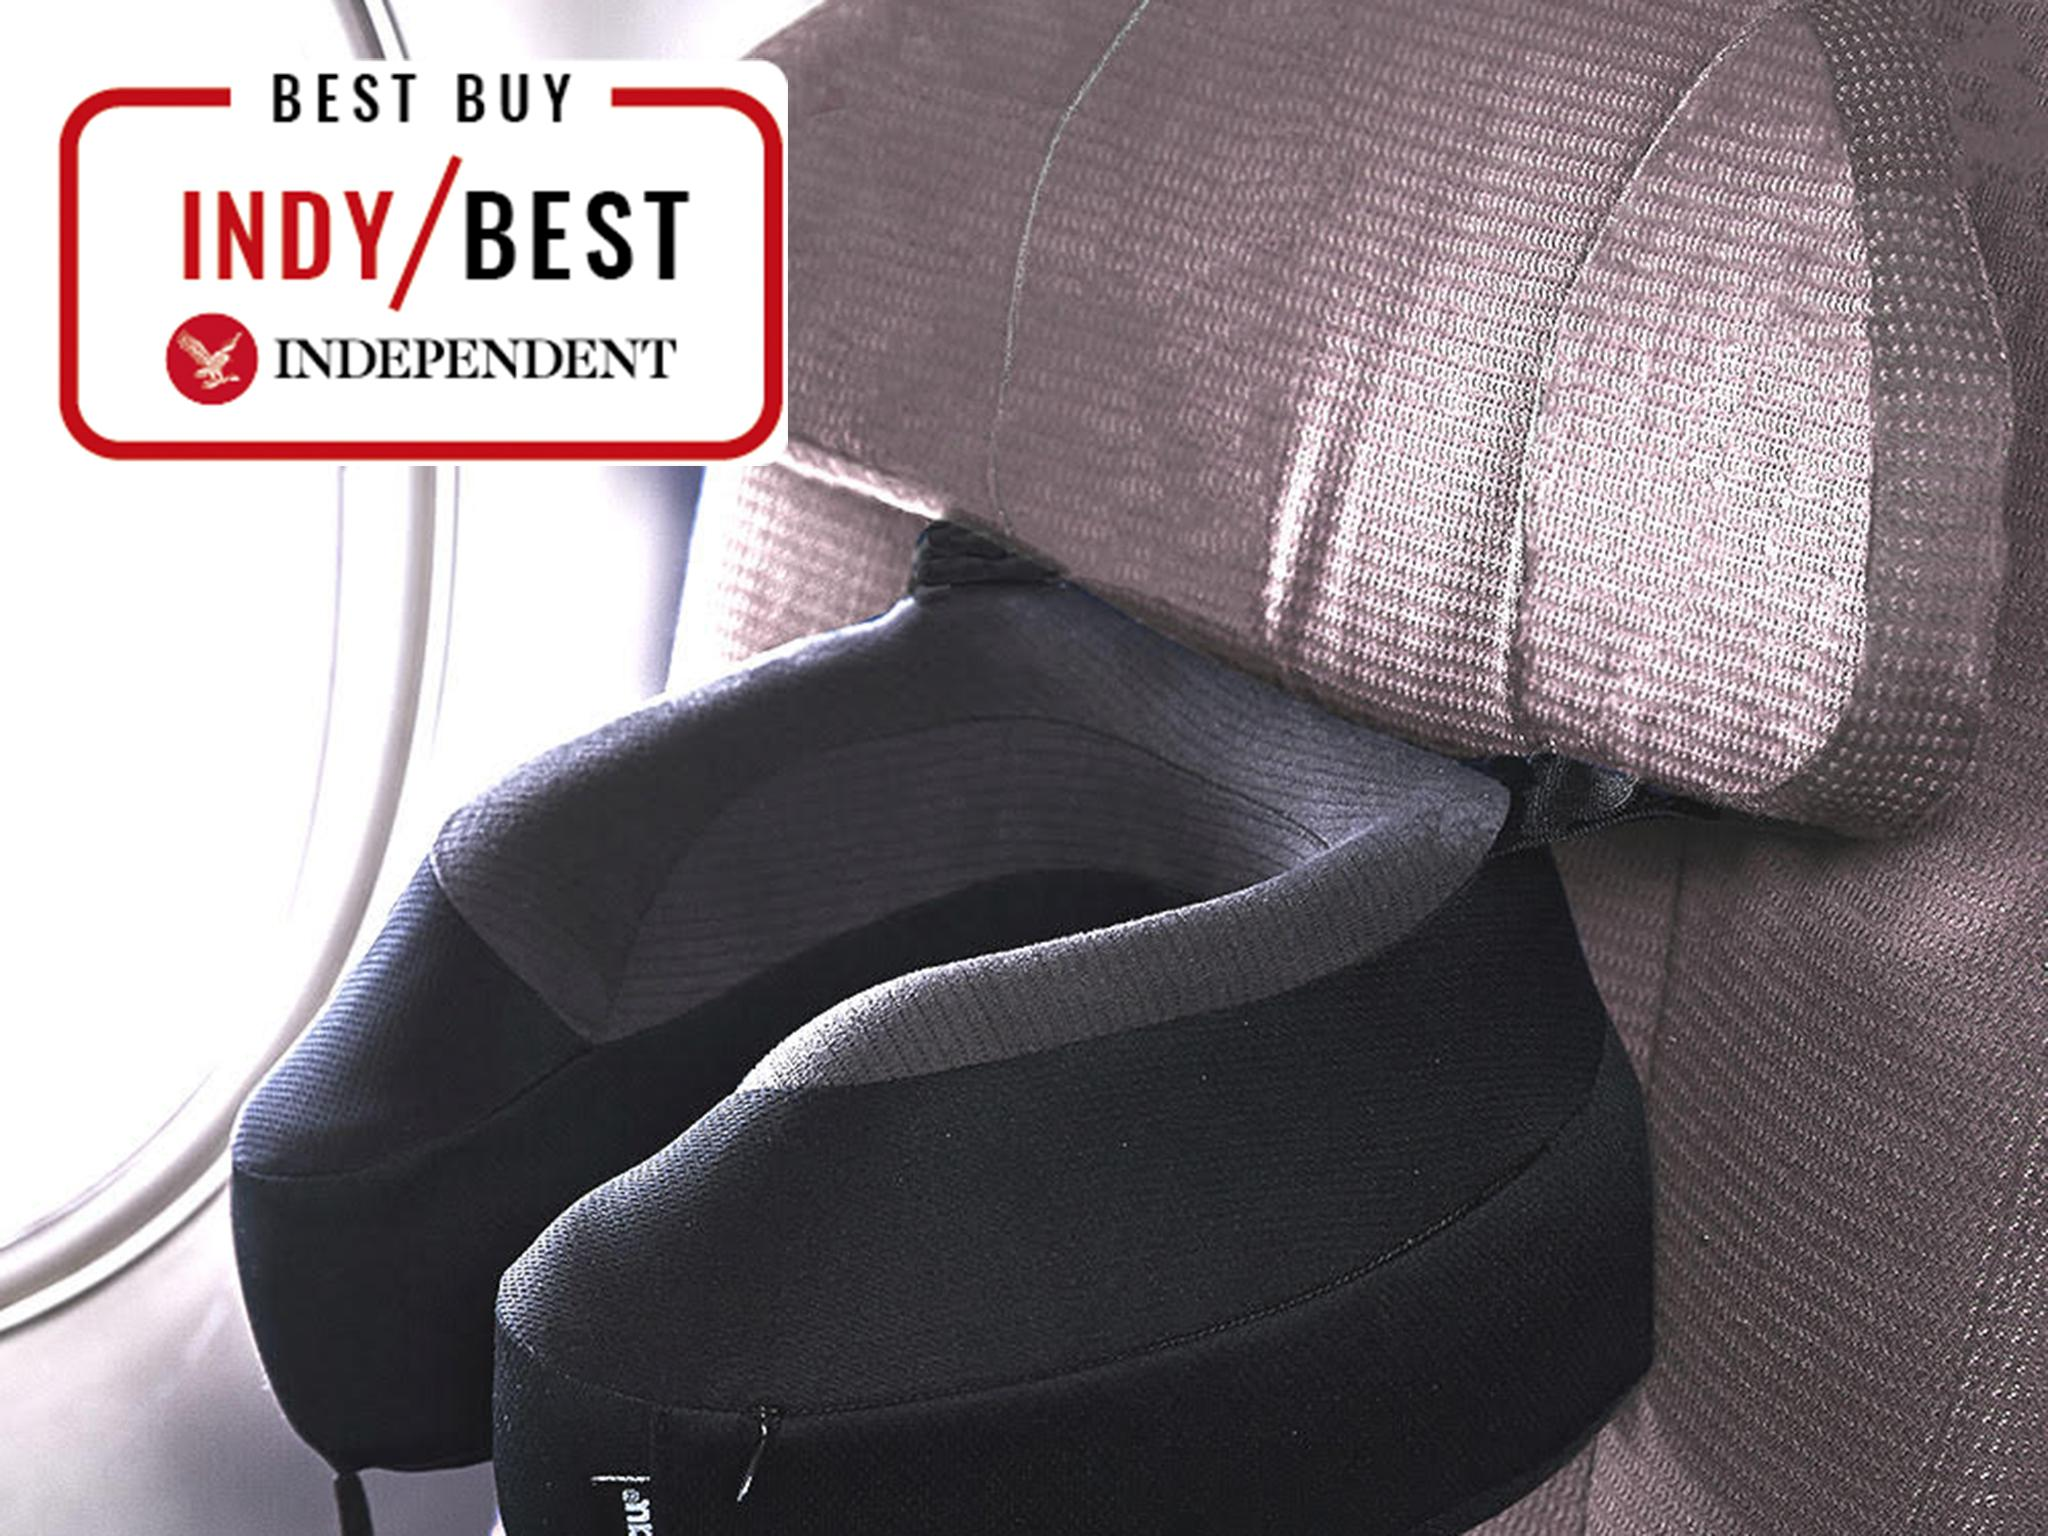 best loved 3ac4c a93cd 10 best travel pillows   The Independent